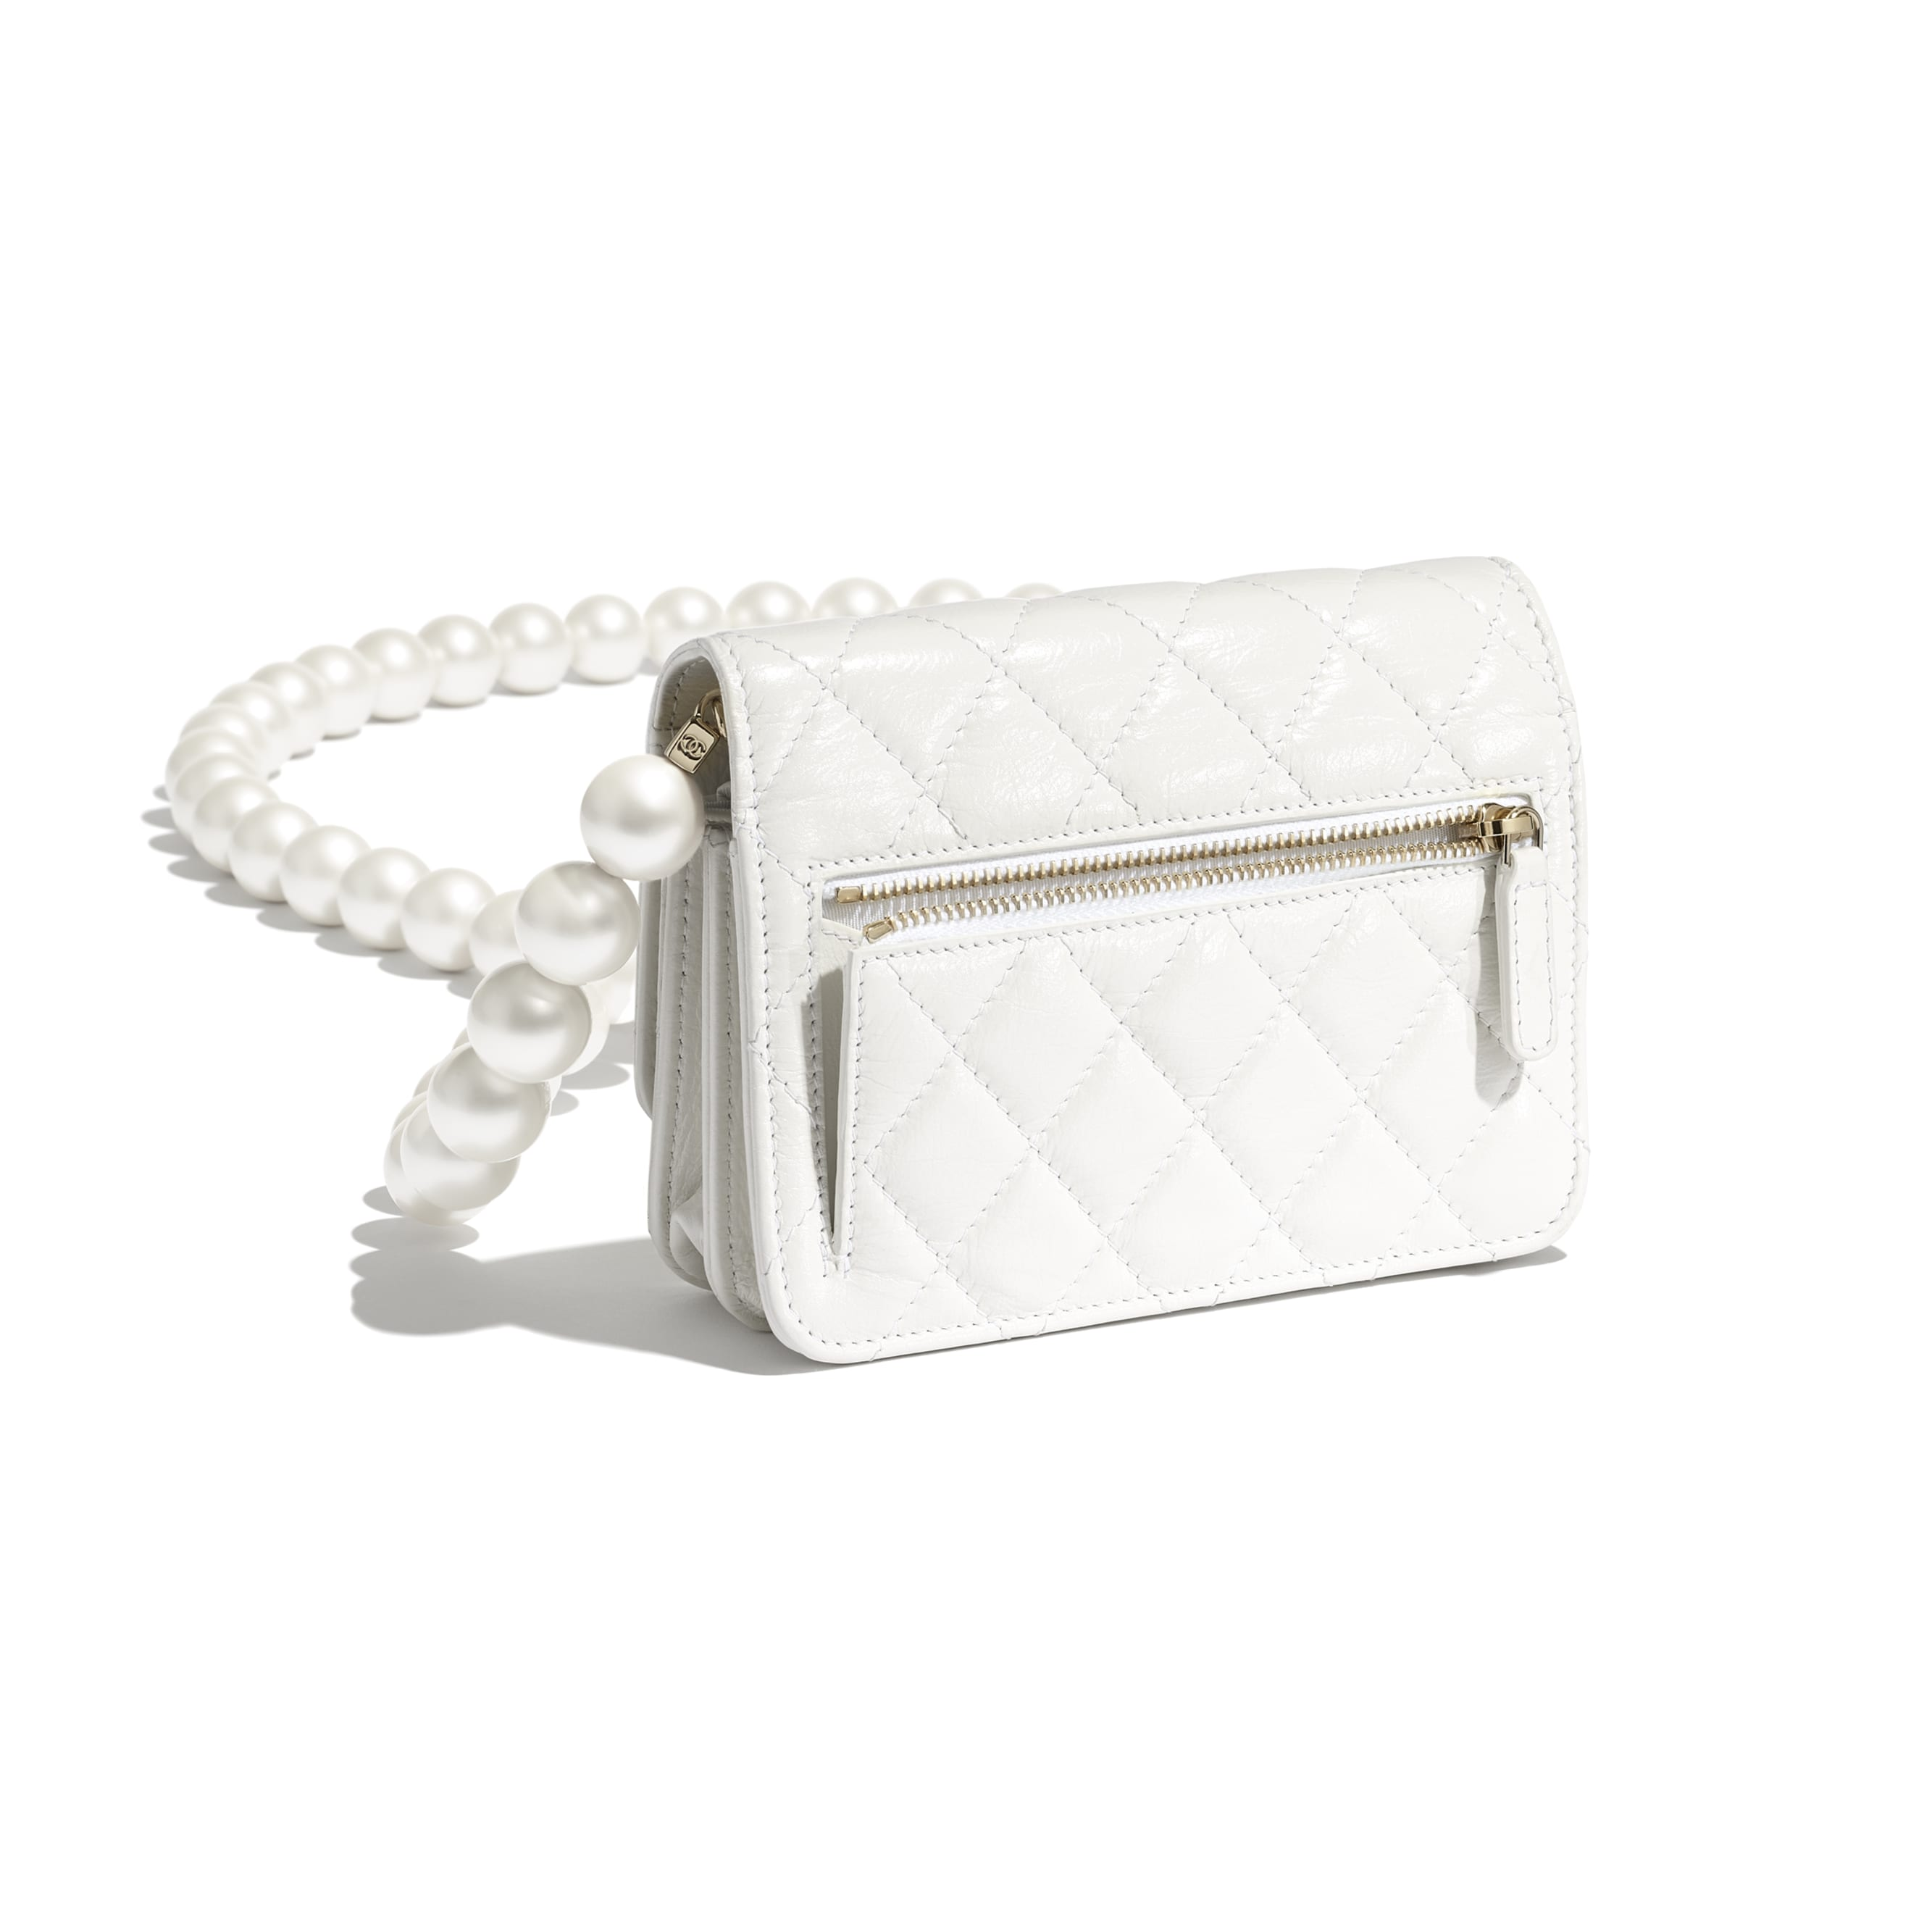 Mini Wallet on Chain - White - Calfskin, Imitation Pearls & Gold-Tone Metal - CHANEL - Extra view - see standard sized version